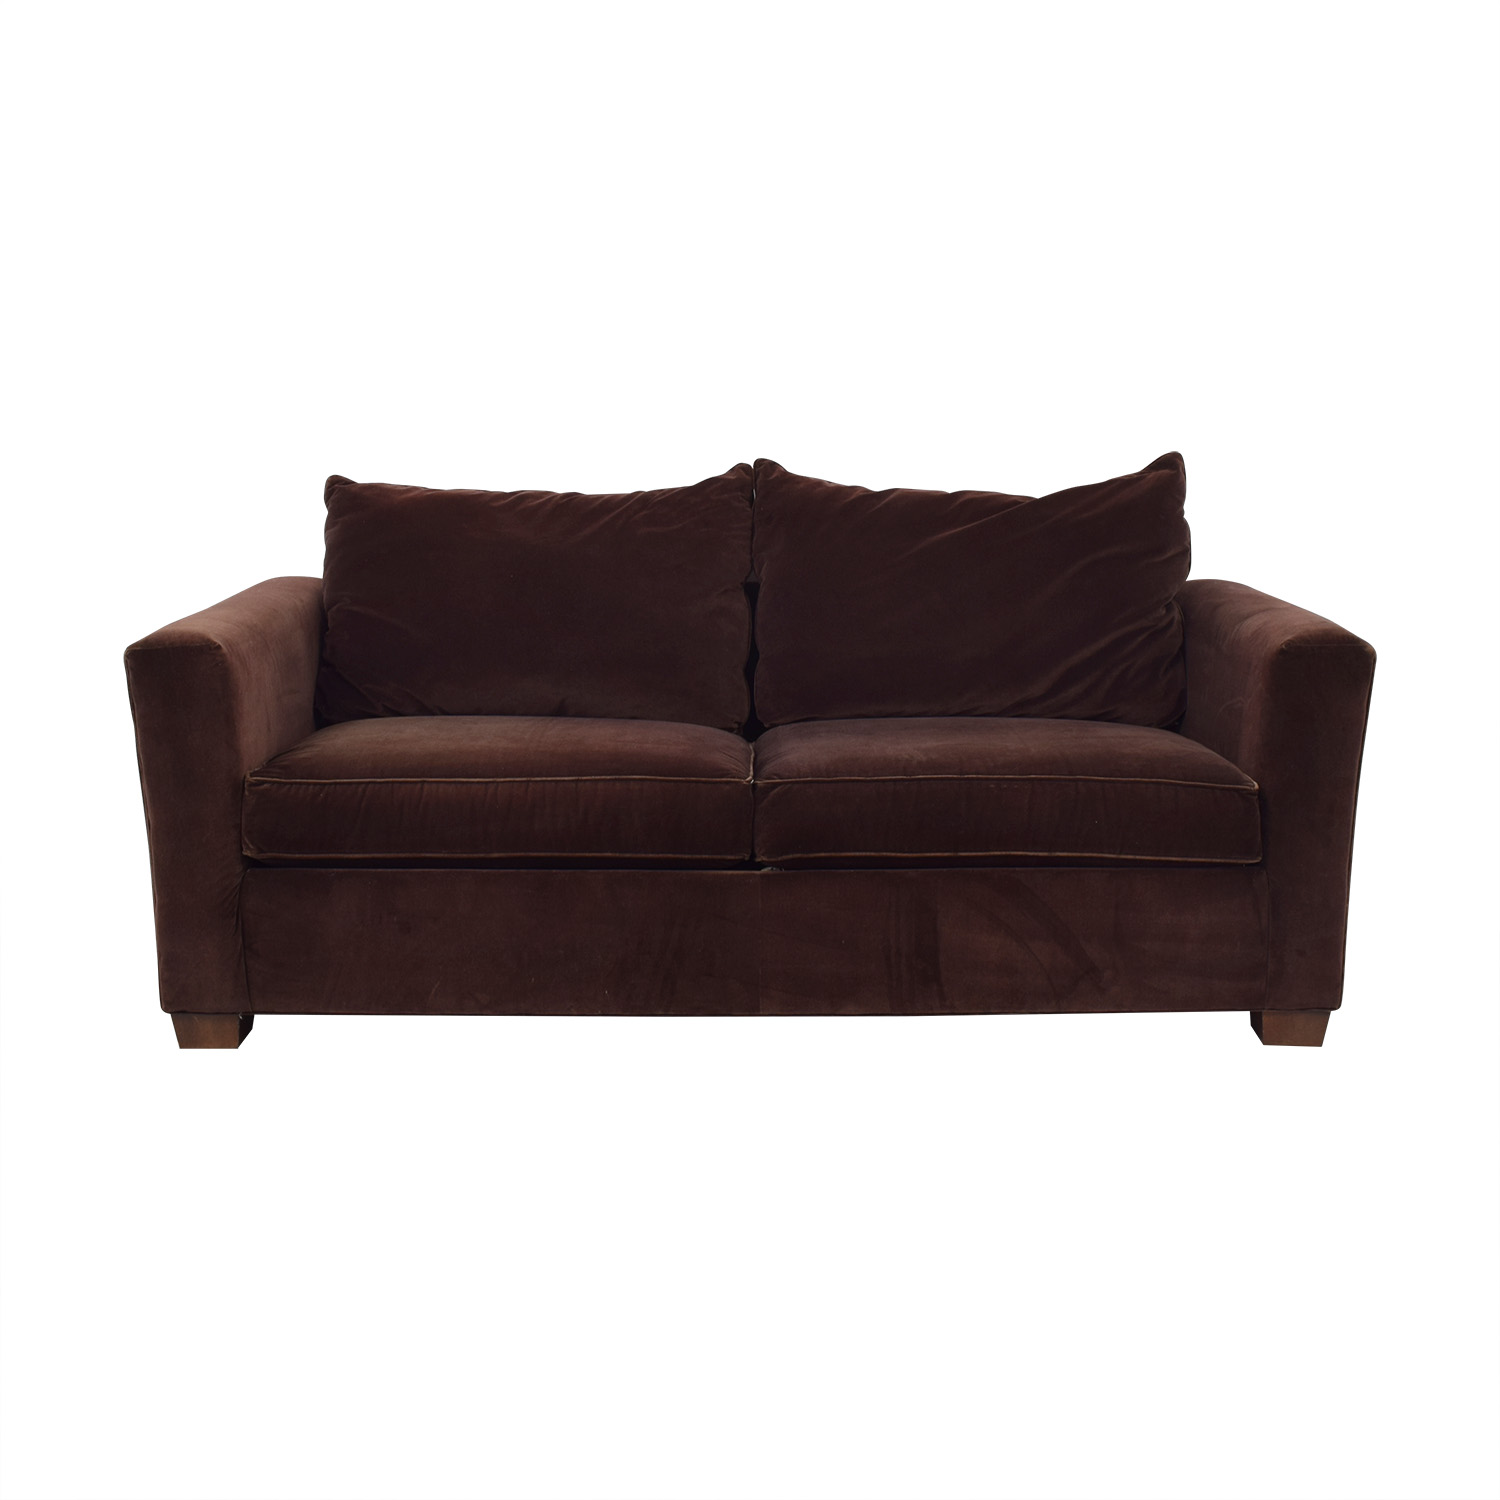 Ethan Allen Ethan Allen Custom Sofa for sale